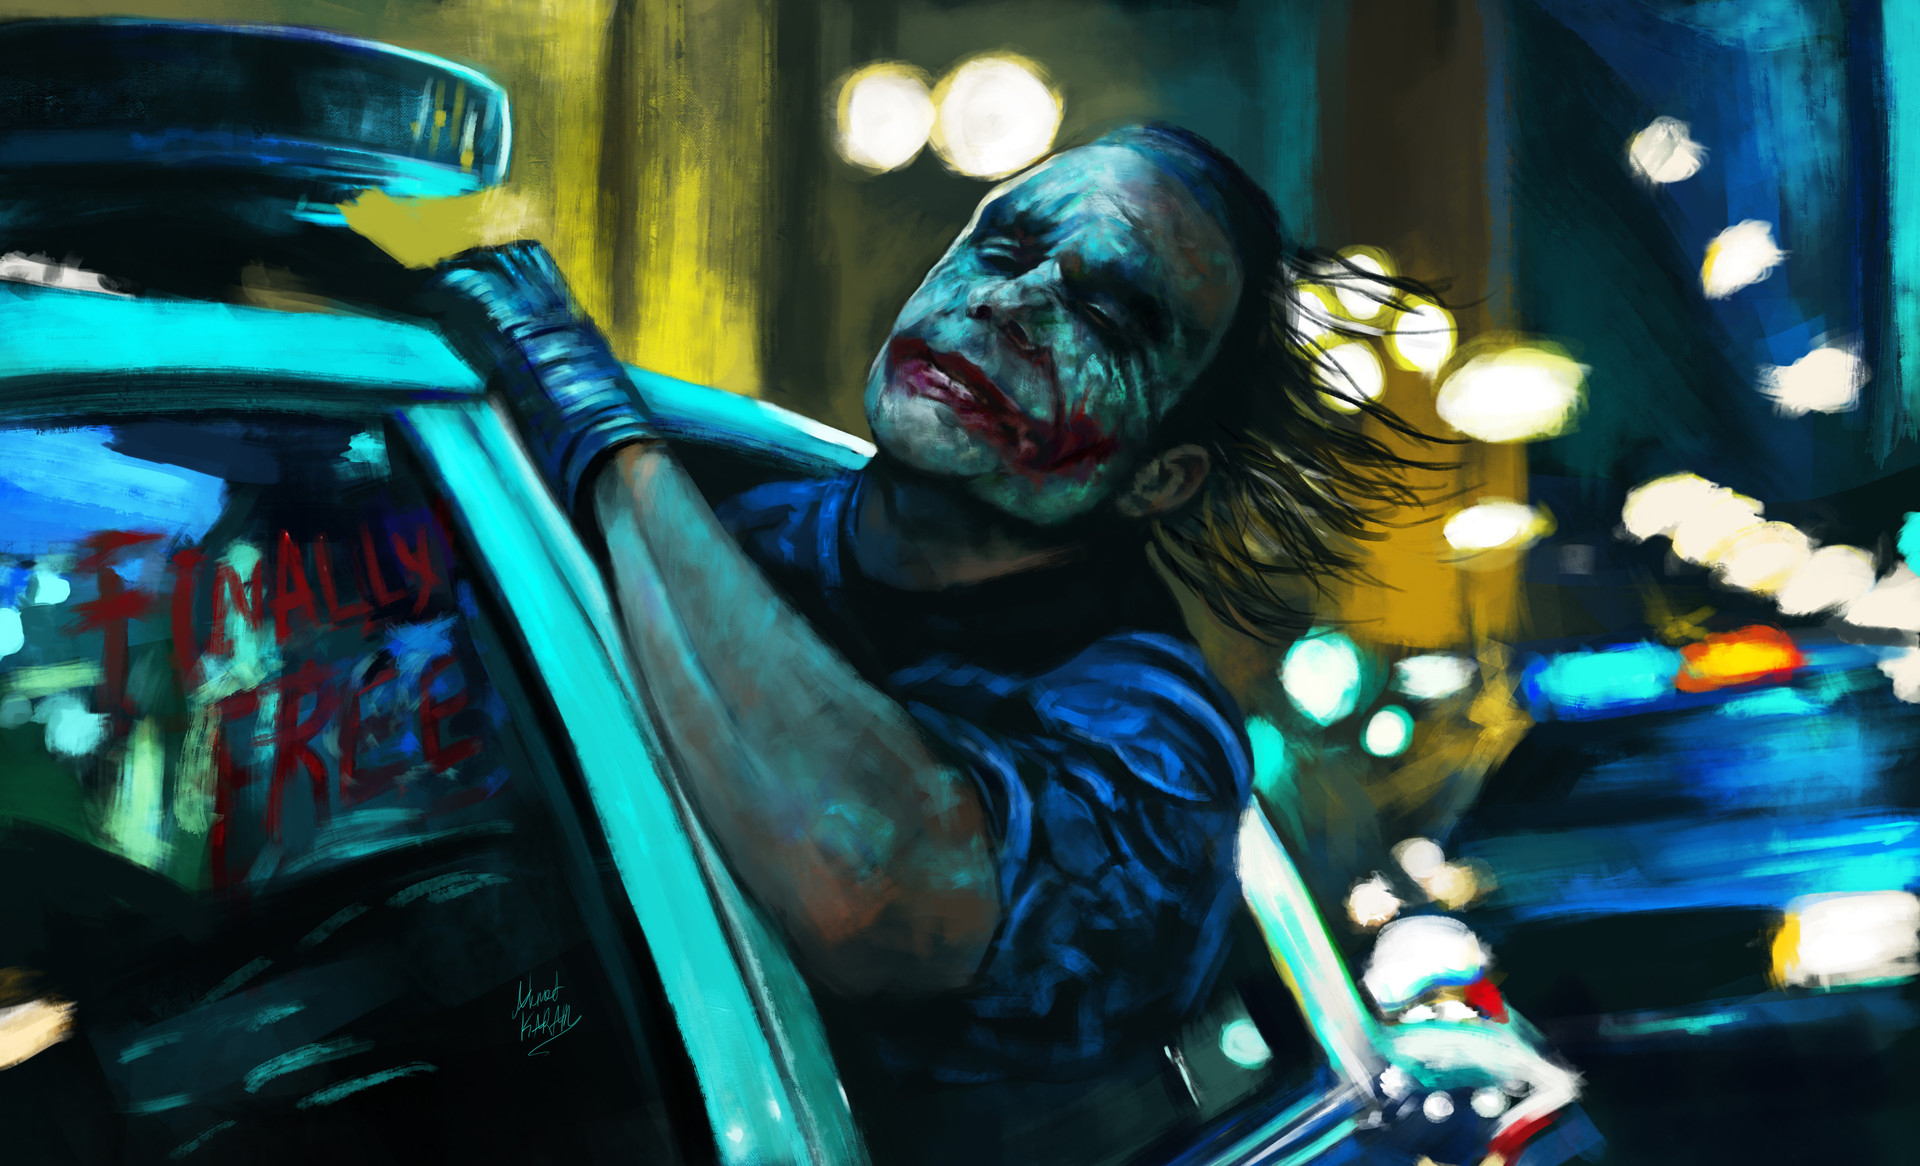 1920x1080 Joker Finally Free Artwork Laptop Full Hd 1080p Hd 4k Wallpapers Images Backgrounds Photos And Pictures